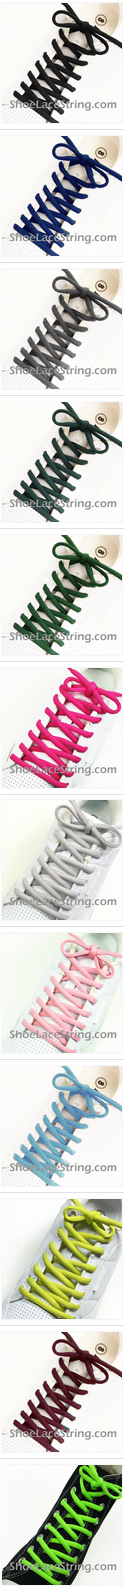 shoelace shoestring shop